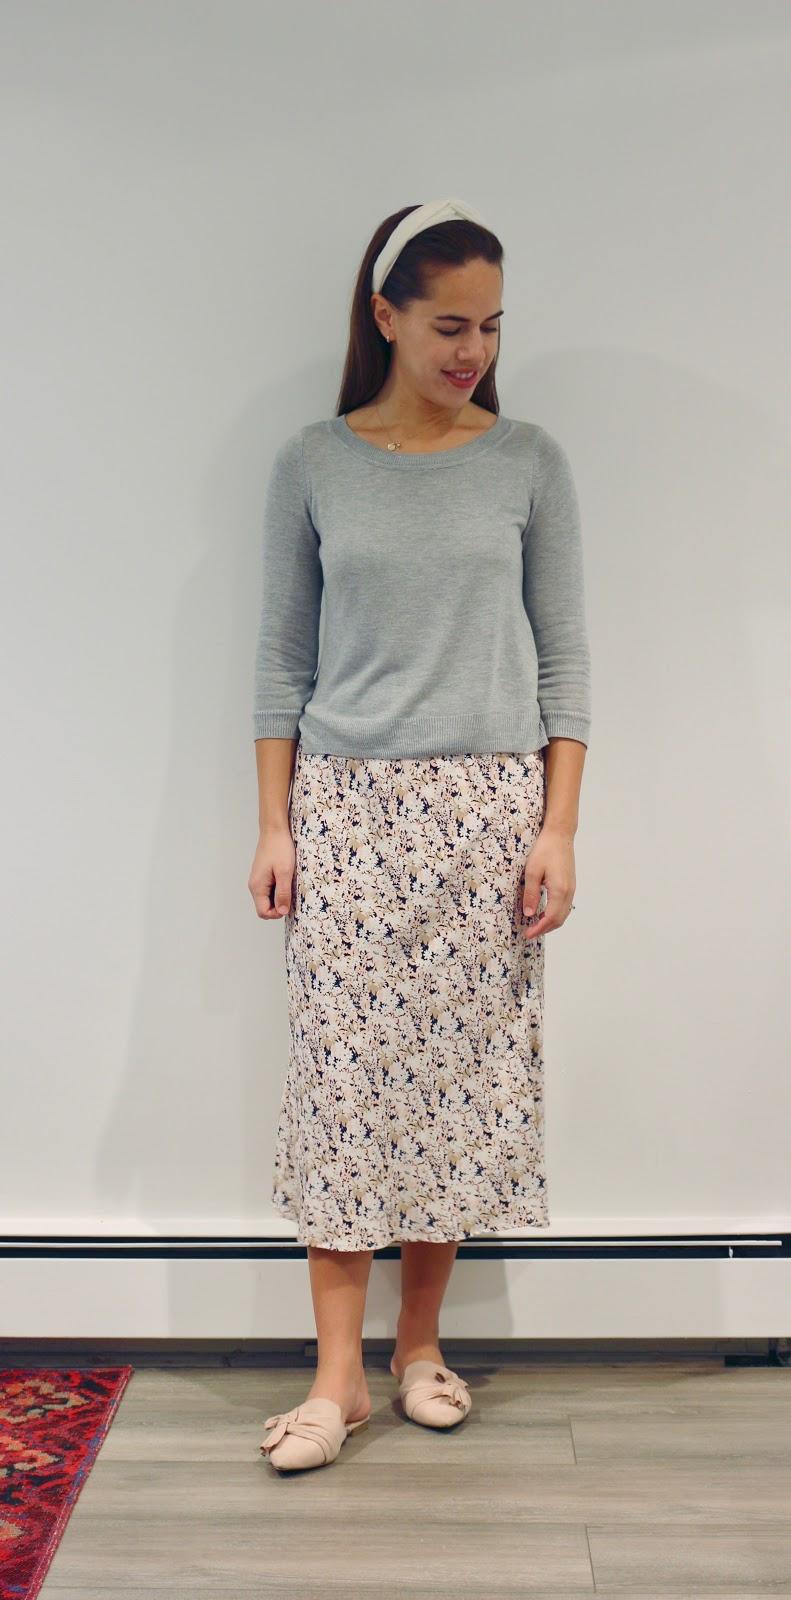 Jules in Flats - Floral Print Midi Skirt (Business Casual Workwear on a Budget)